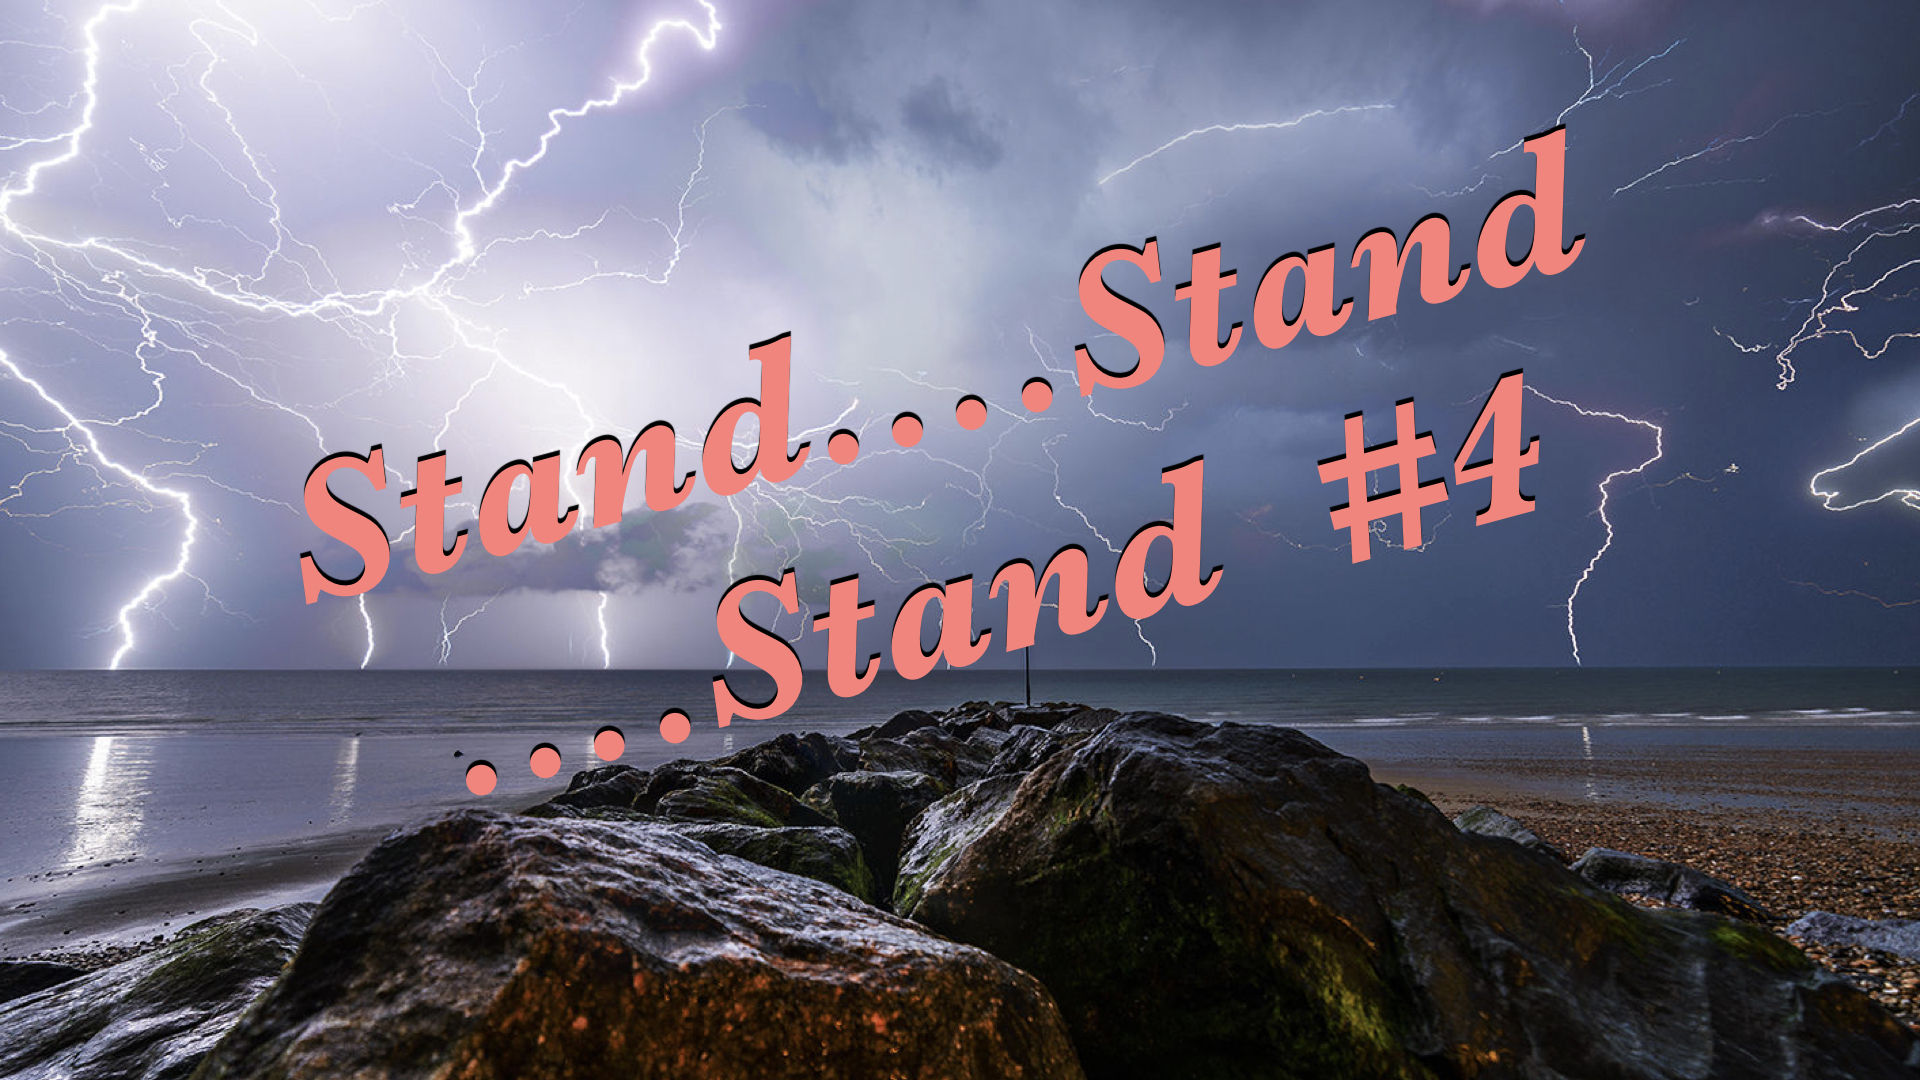 Stand StandStand 4  3112020 50216 PM